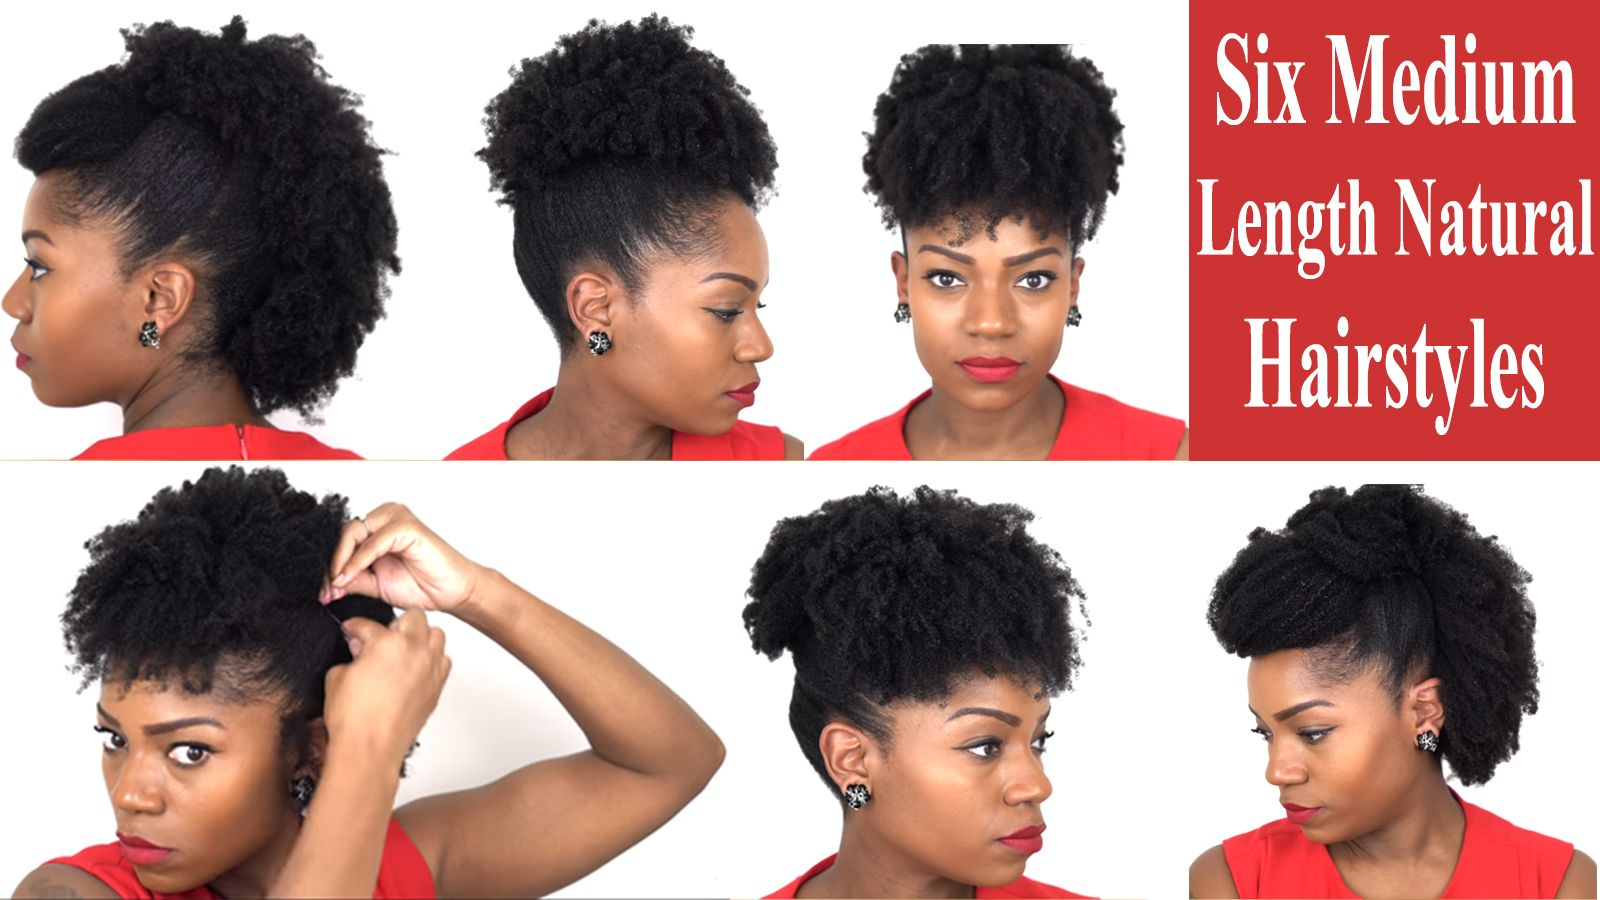 Six Fabulous Hairstyles For Medium Length Natural Hair Great For All Occasion African American Hairstyle Videos Aahv Natural Hair Styles Medium Length Hair Styles Natural Hair Styles Easy